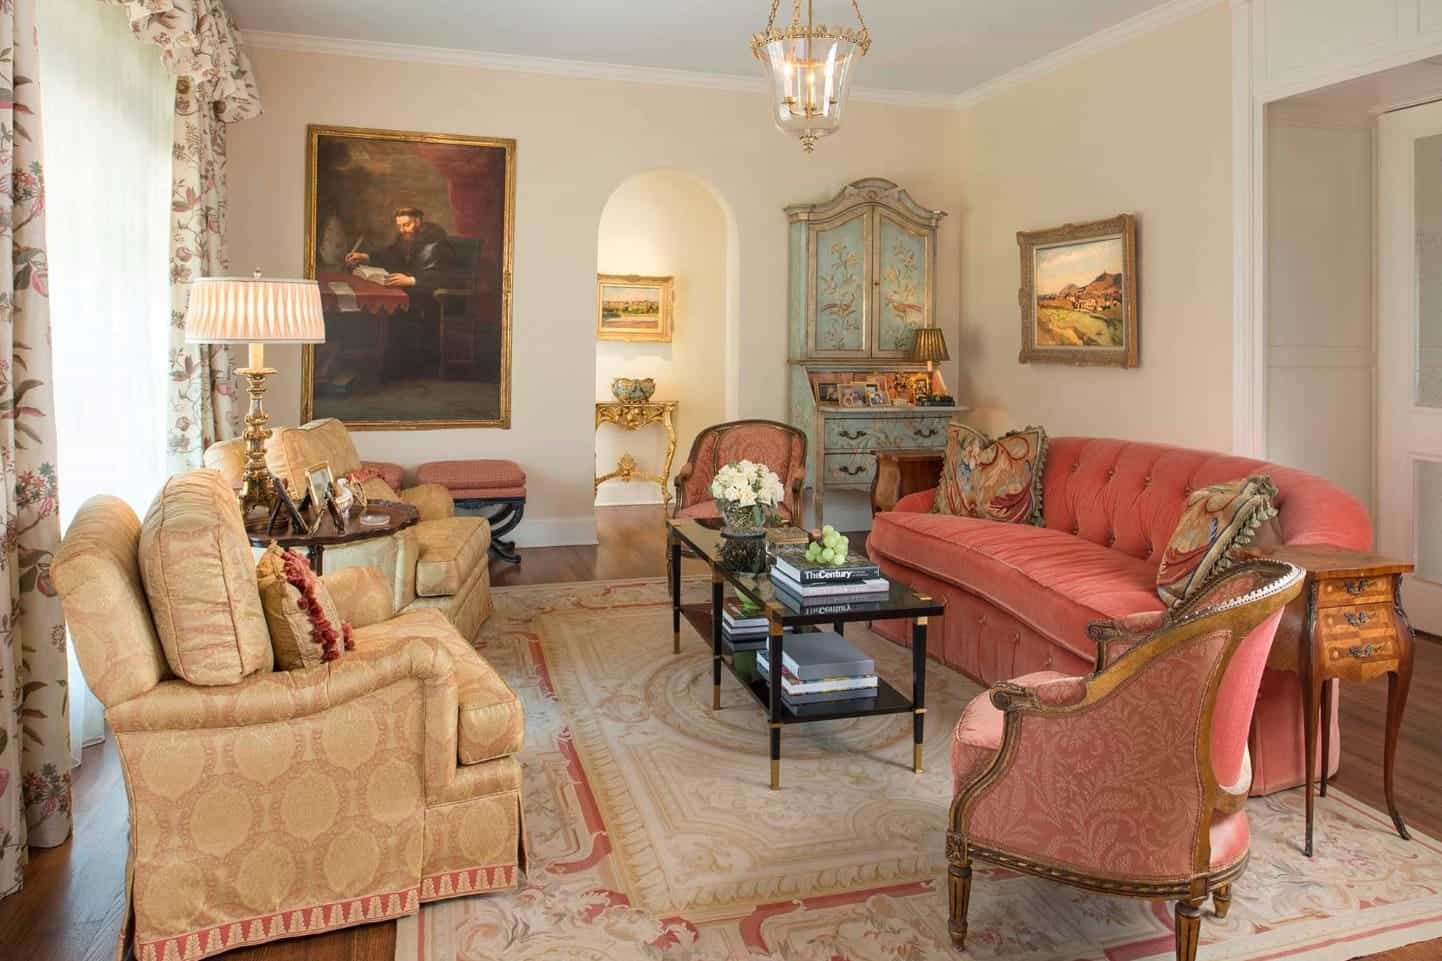 Spanish living room integrated with a Victorian style. It is furnished with a salmon pink tufted sofa and mismatched chairs that centers on a black coffee table over a shabby chic rug.